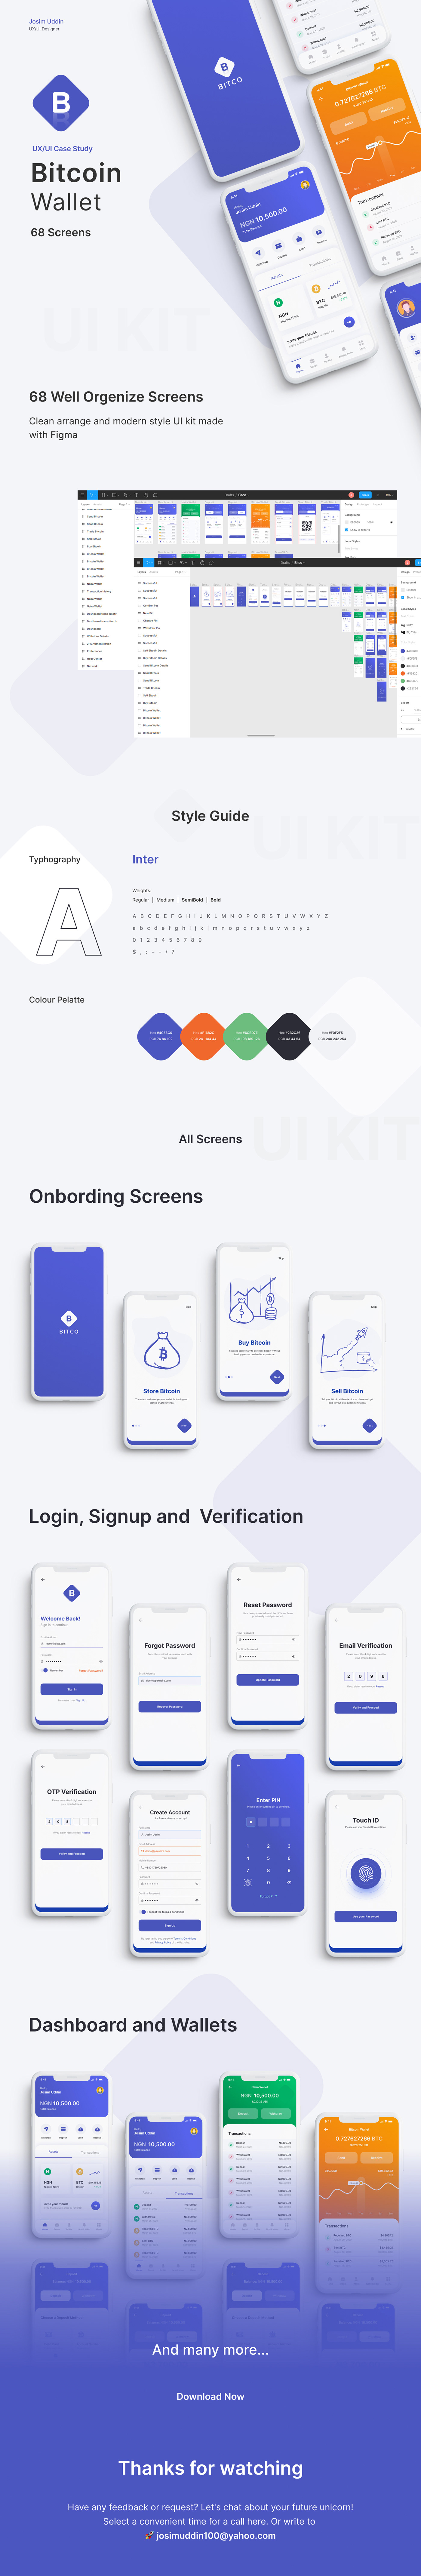 app design banking app bitcoin Case Study crypto currency trading ui design UX design WALLET